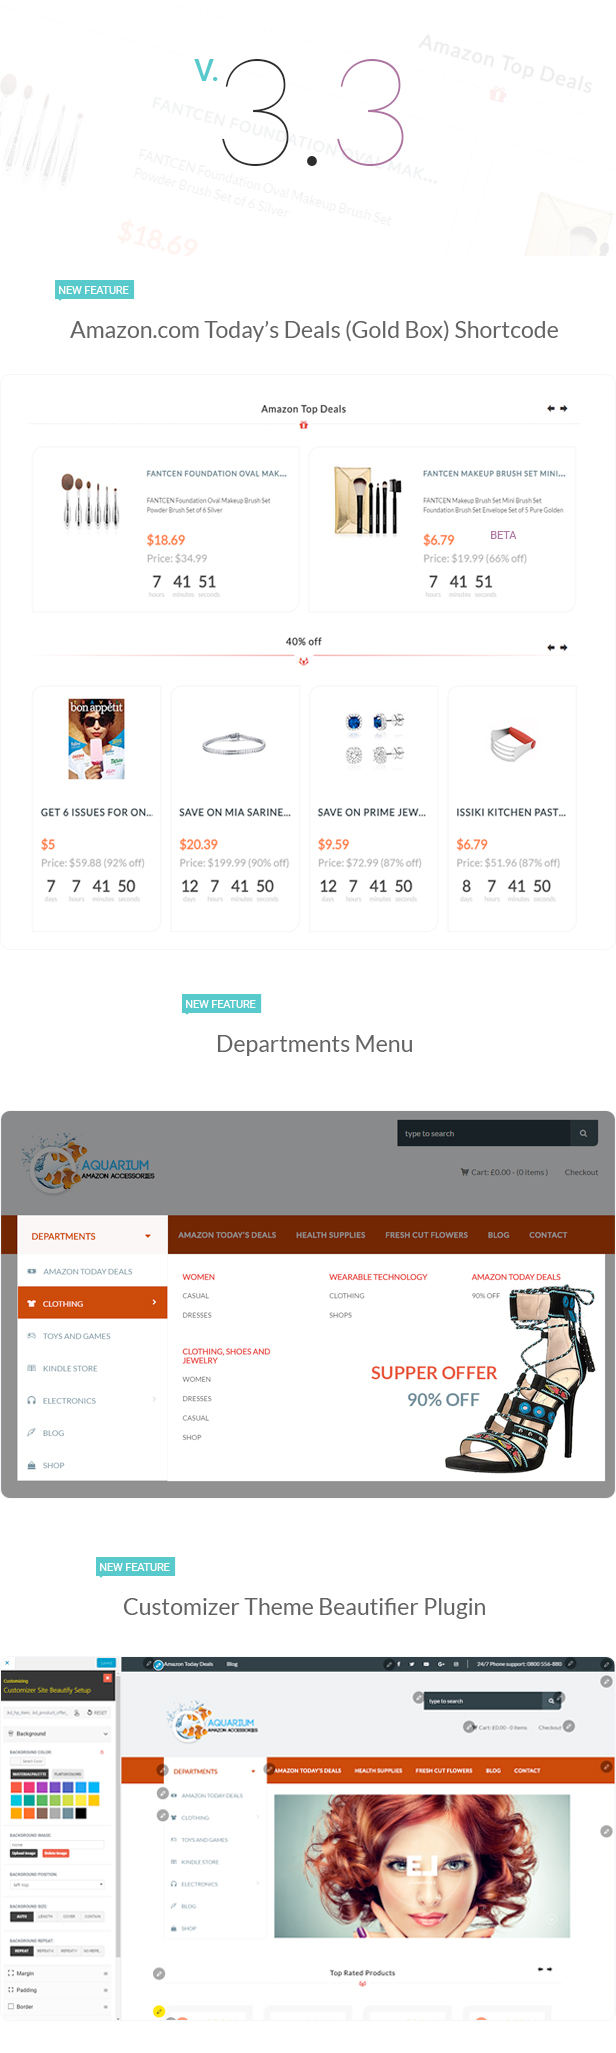 Kingdom - WooCommerce Amazon Affiliates Theme - 7